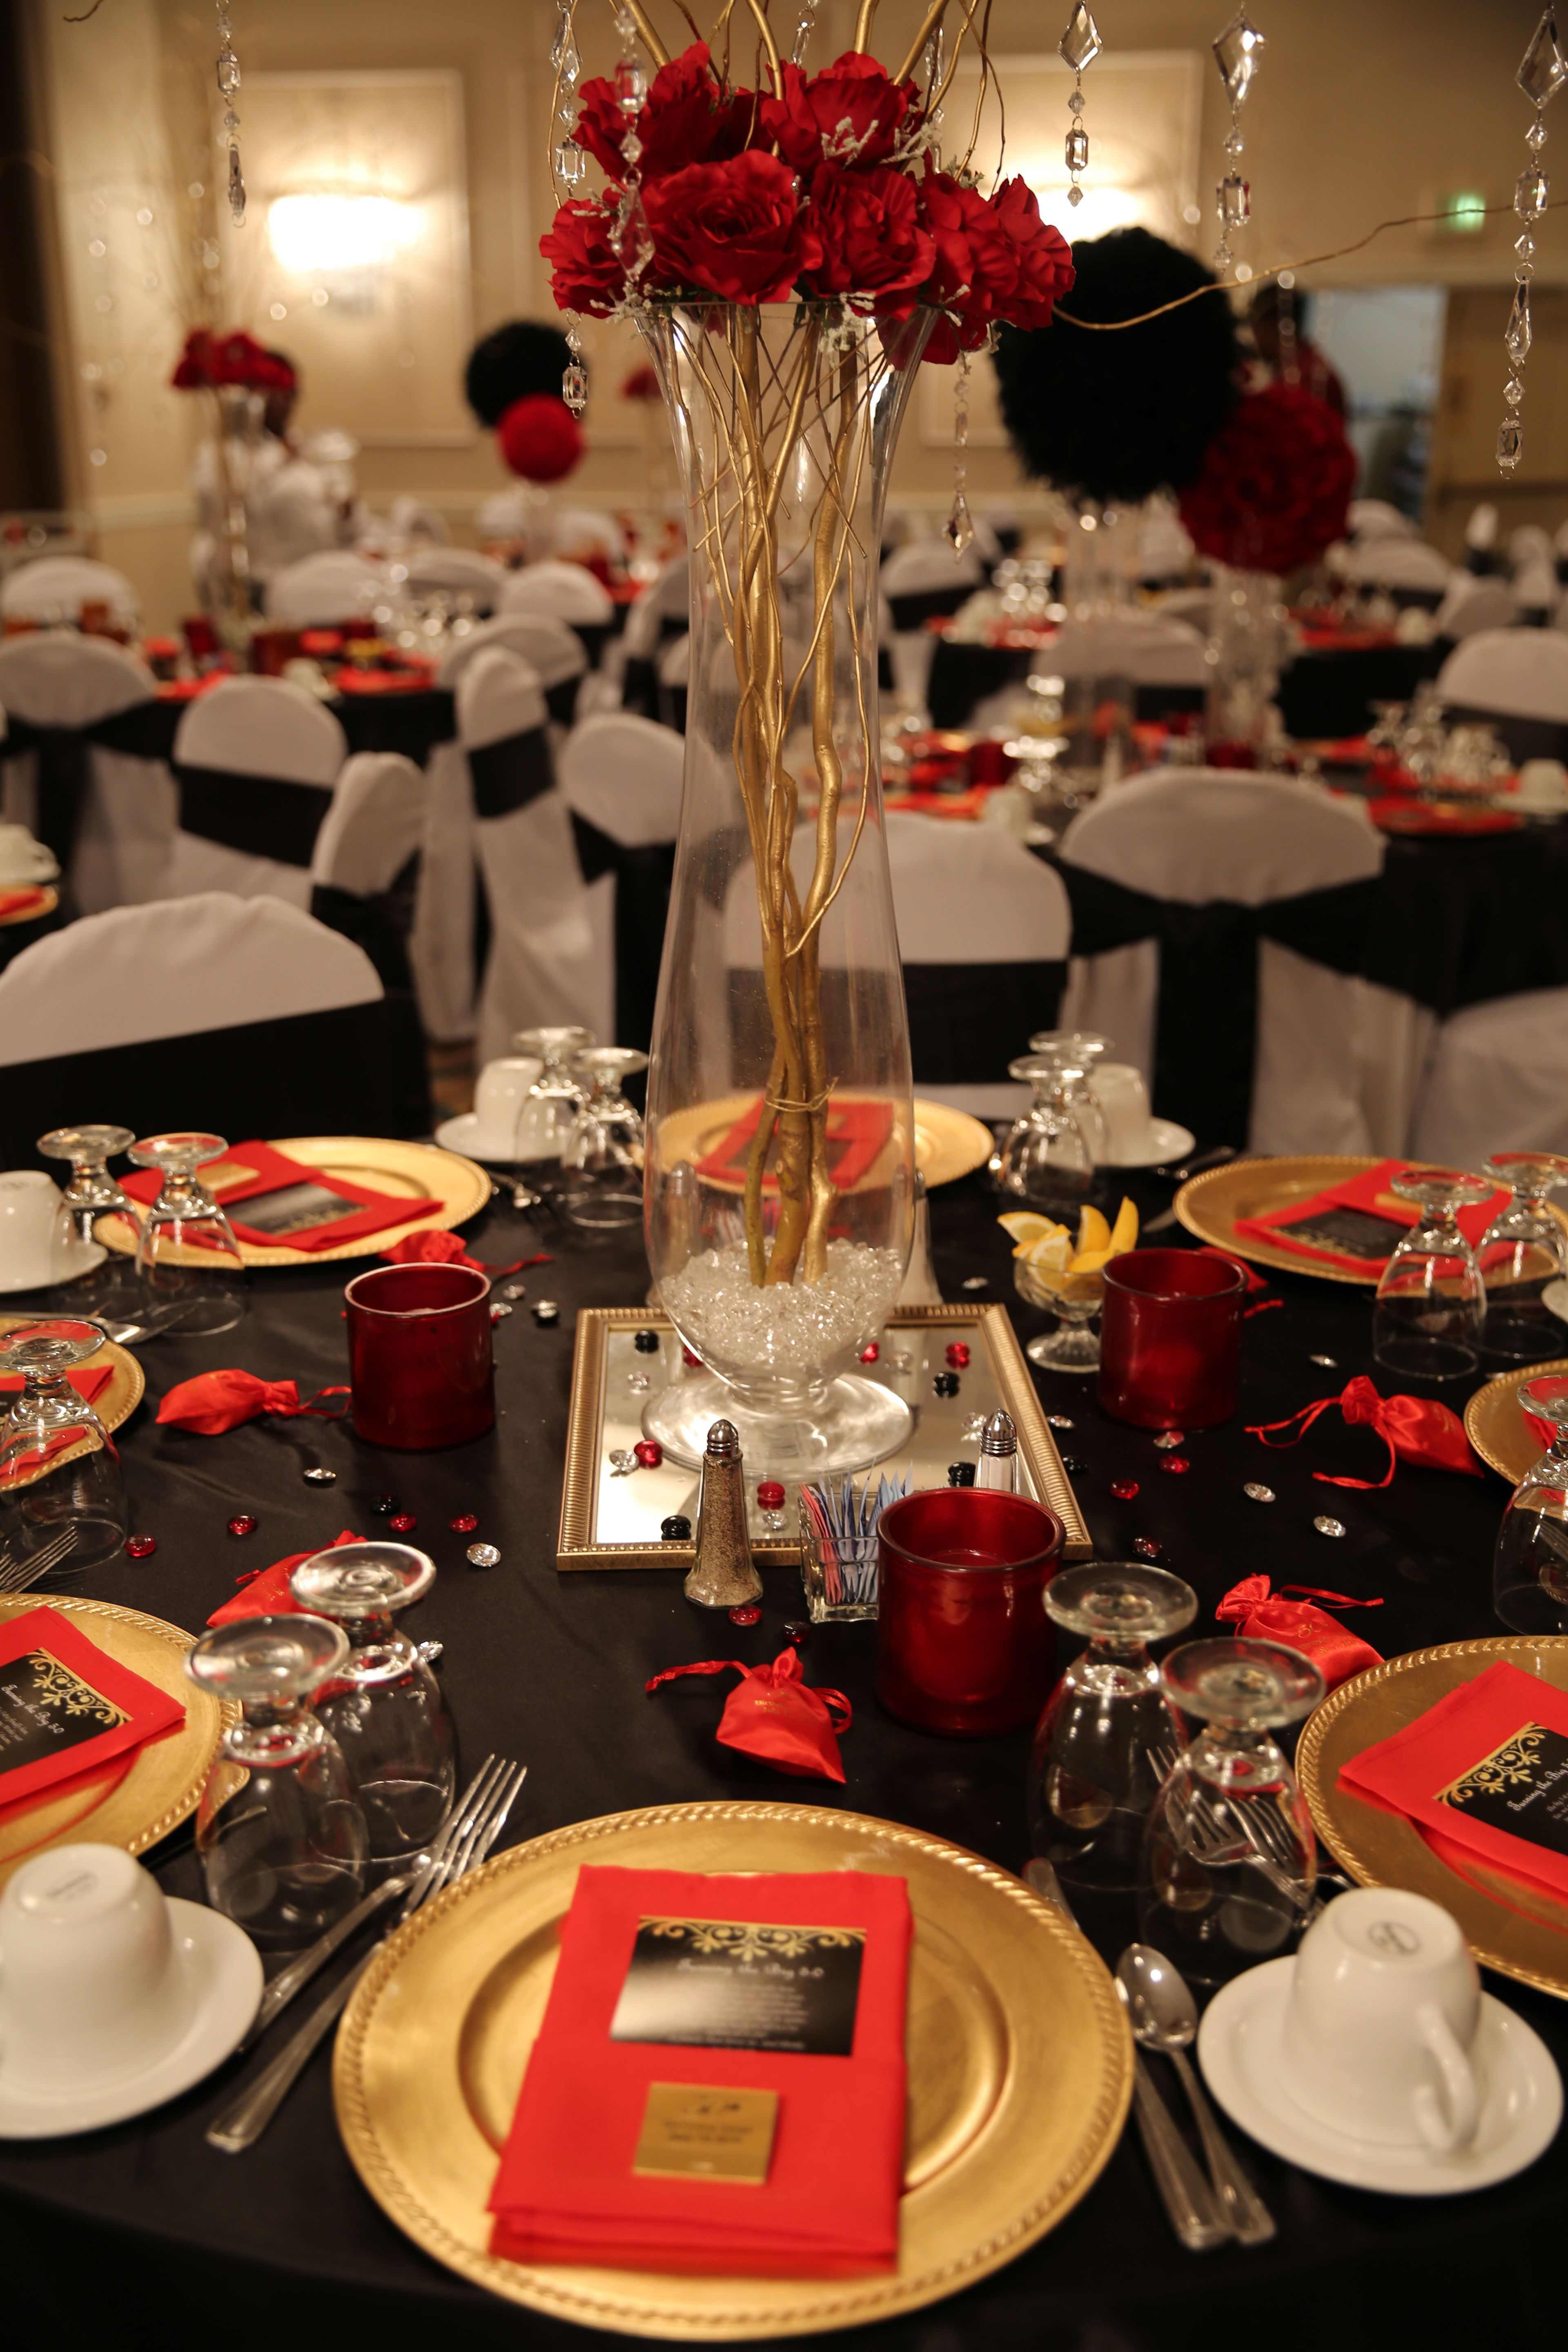 Table Decor Red Black And Gold Table Decorations For 50th Birthday